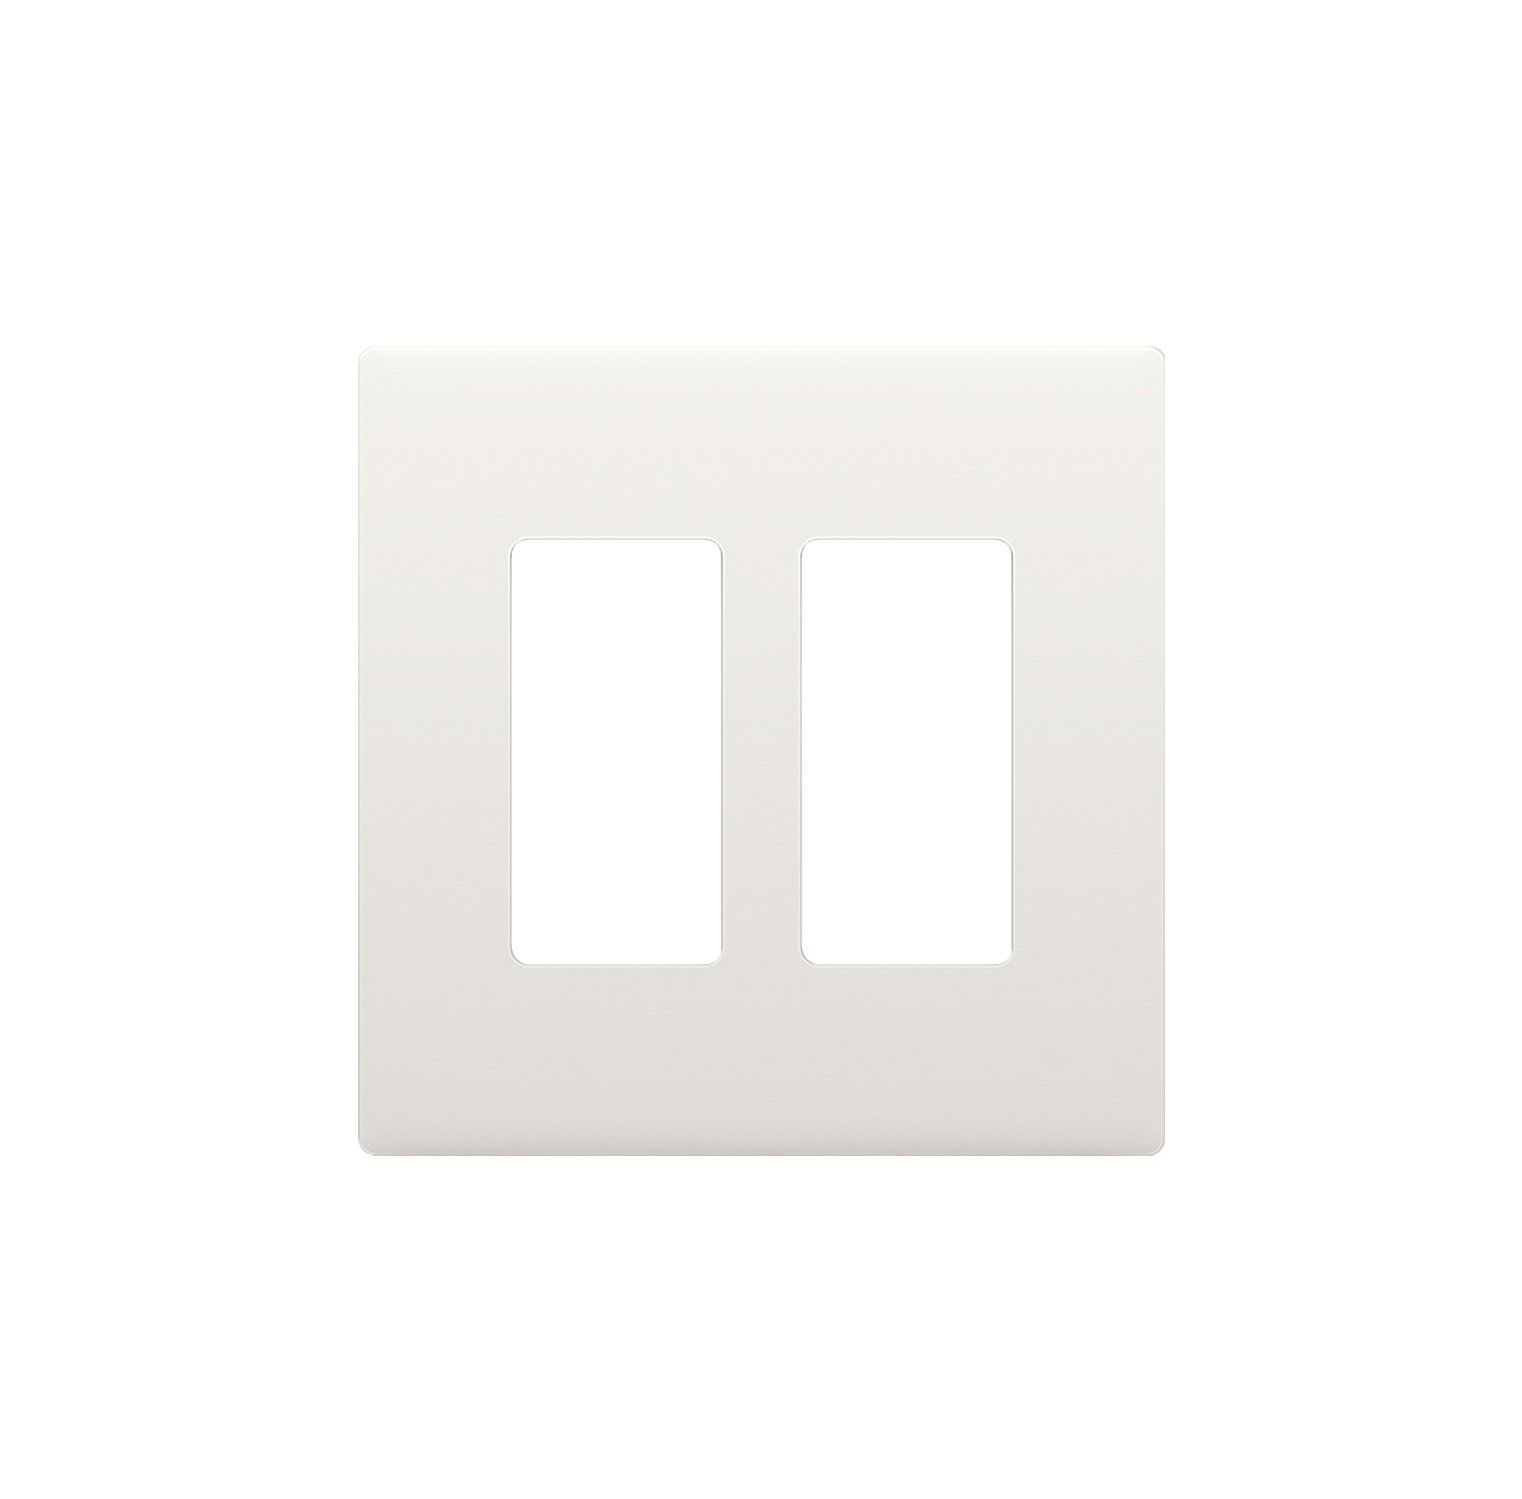 Noon Smart Lighting, Compatible with Alexa (2 Switch Wall Plate)